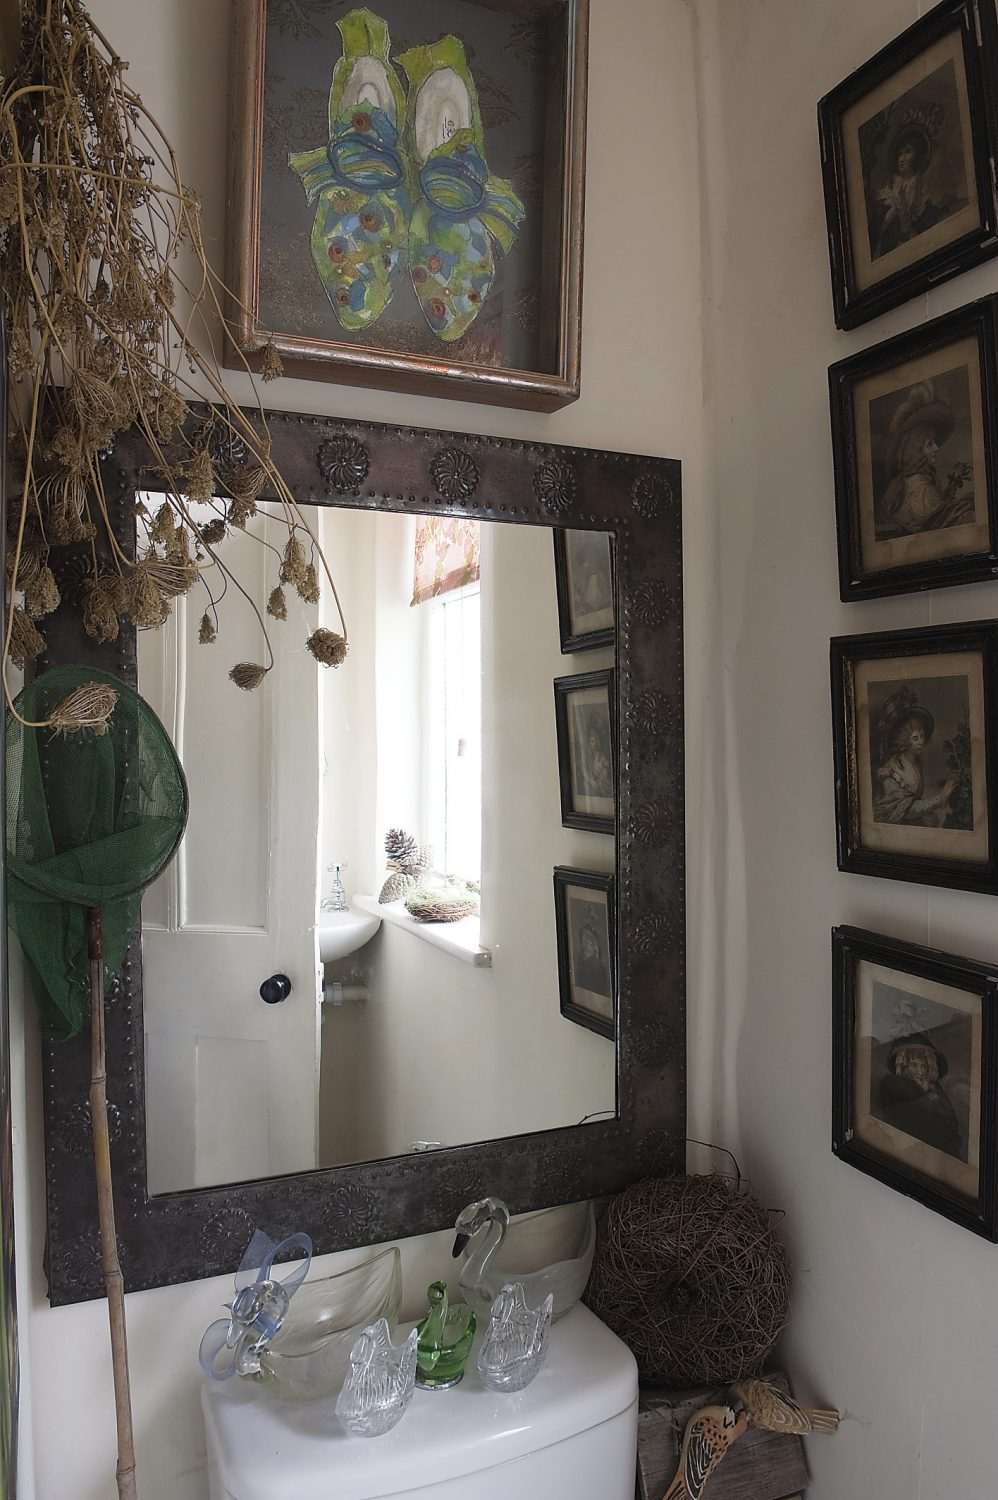 The upstairs loo is home to some of Helen's swan collection, this time in glass